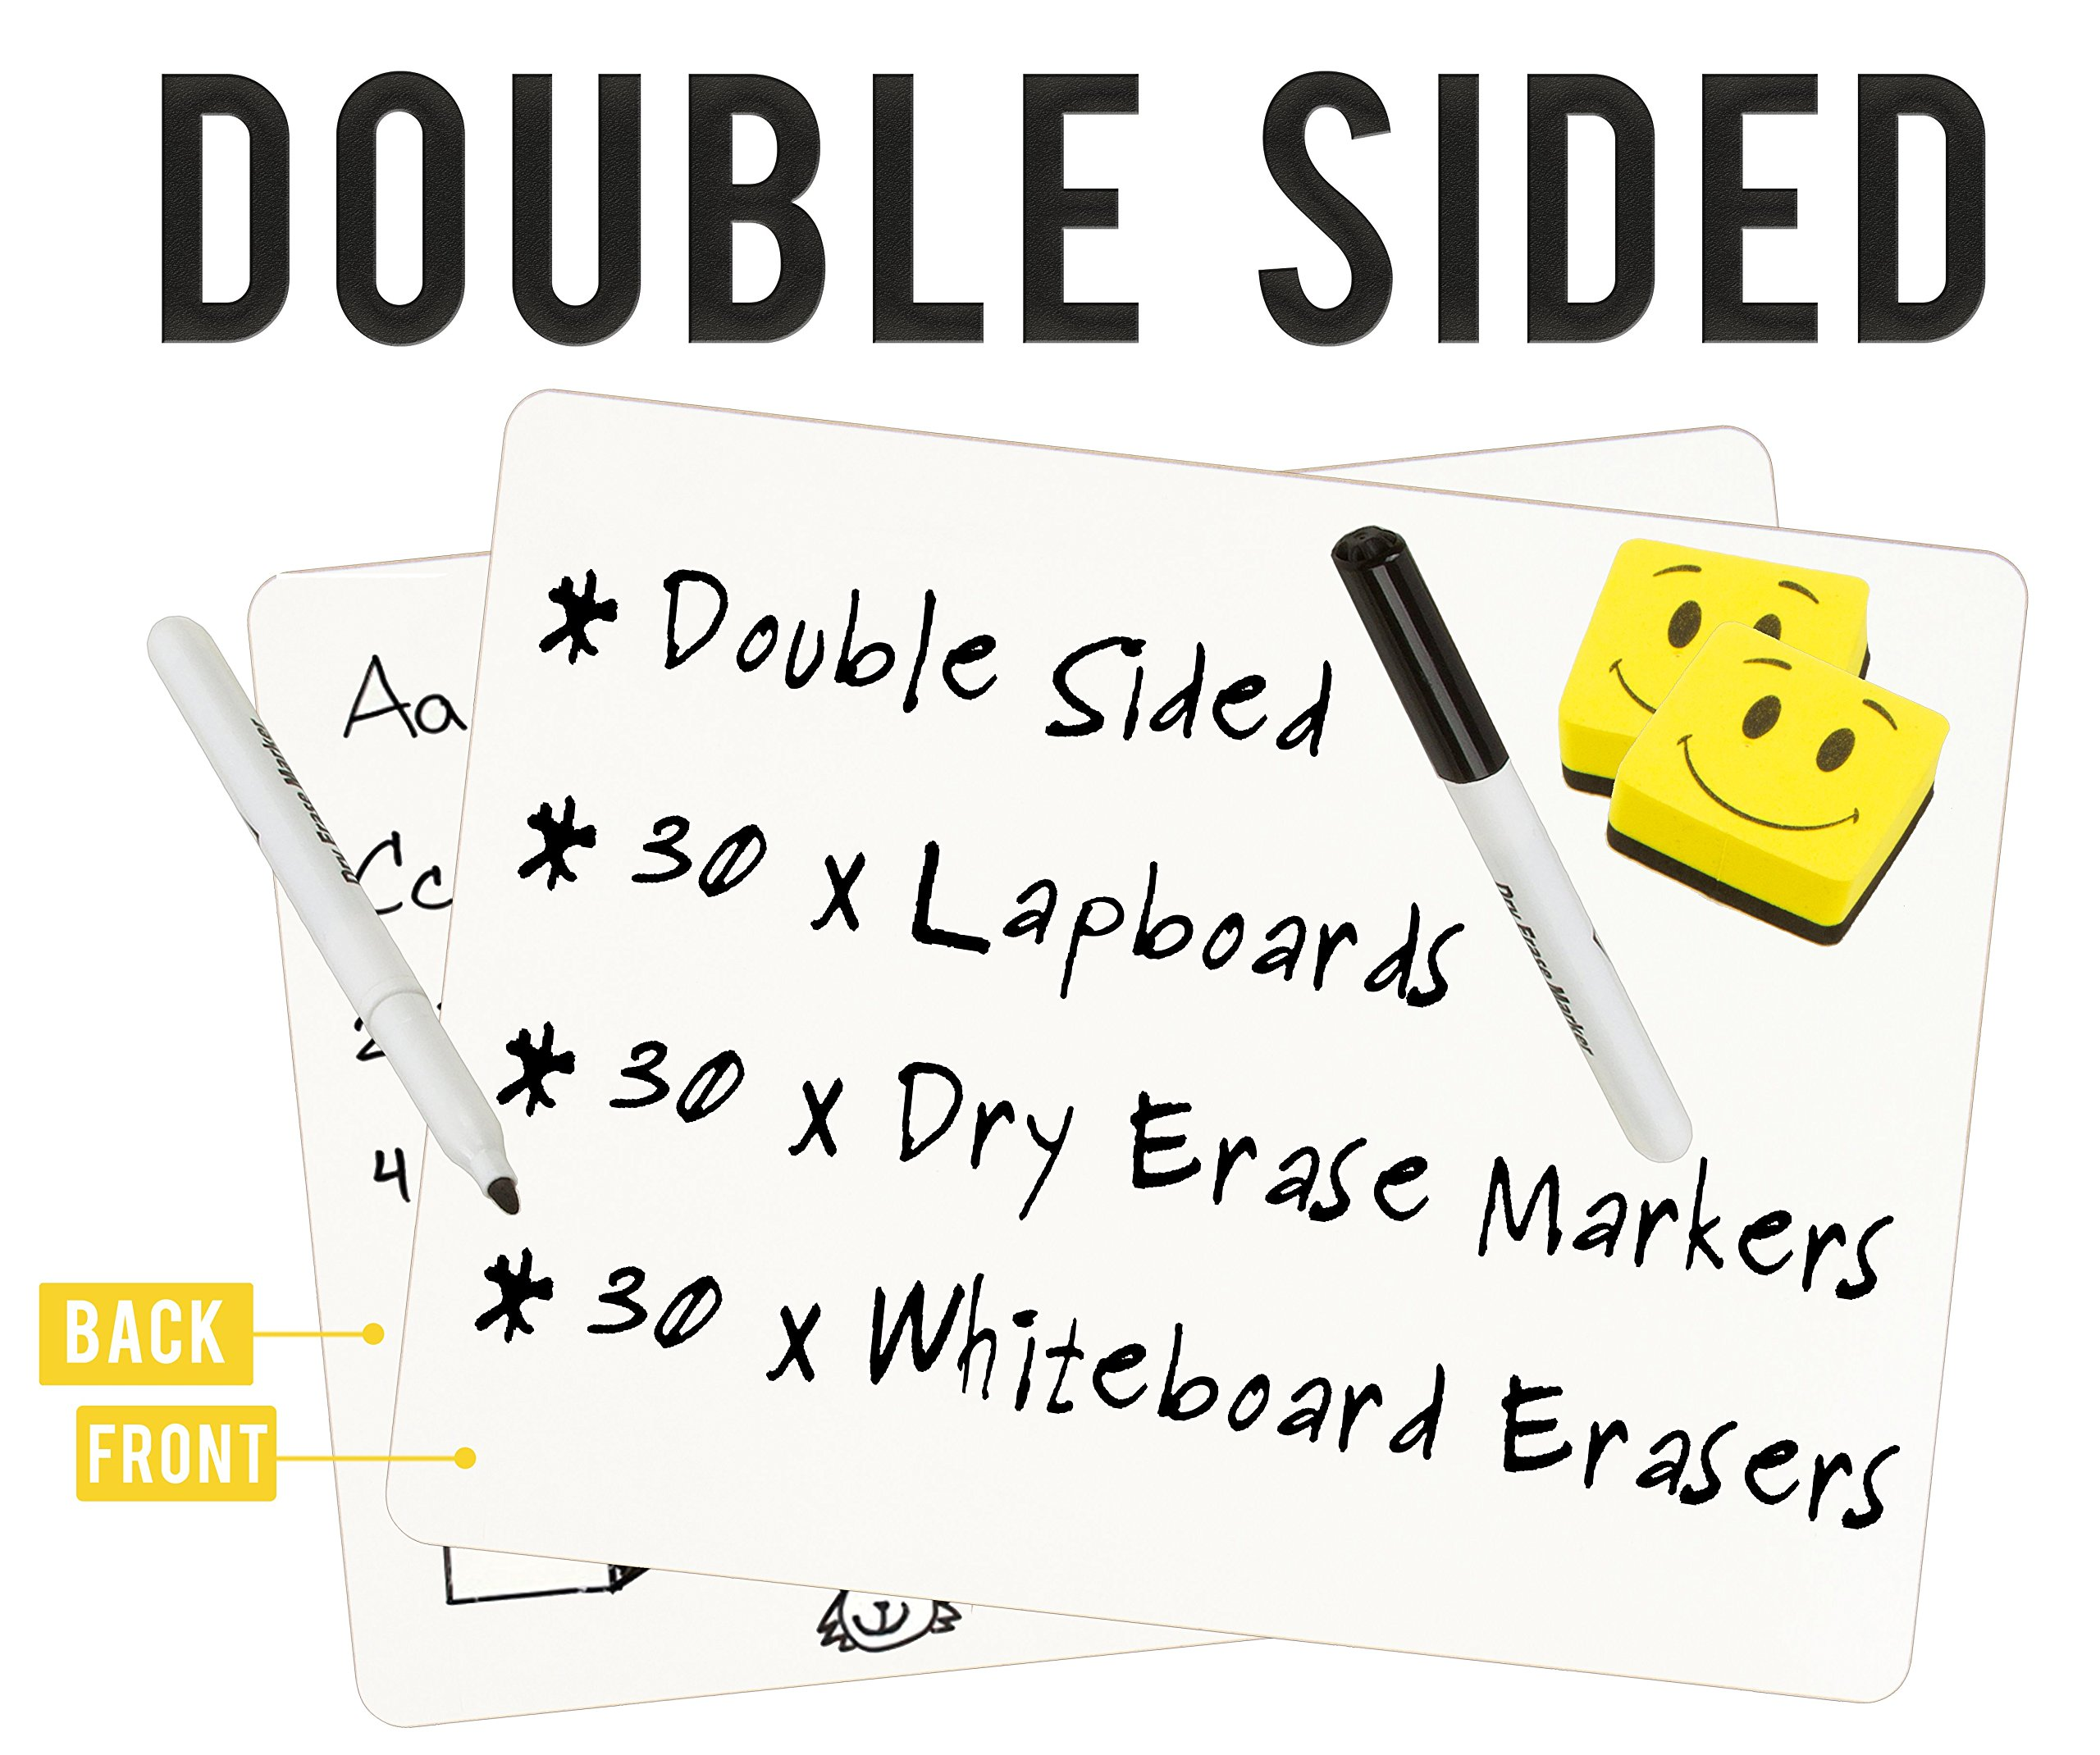 "DOUBLE SIDED Dry Erase Lapboards Pack Bulk Includes 30 Pcs 9 x 12"" Inch Mini Small Whiteboards With Erasers and Markers For School Students Write Large Classroom Drawing Interactive Office Supplies by Dapper Display (Image #2)"